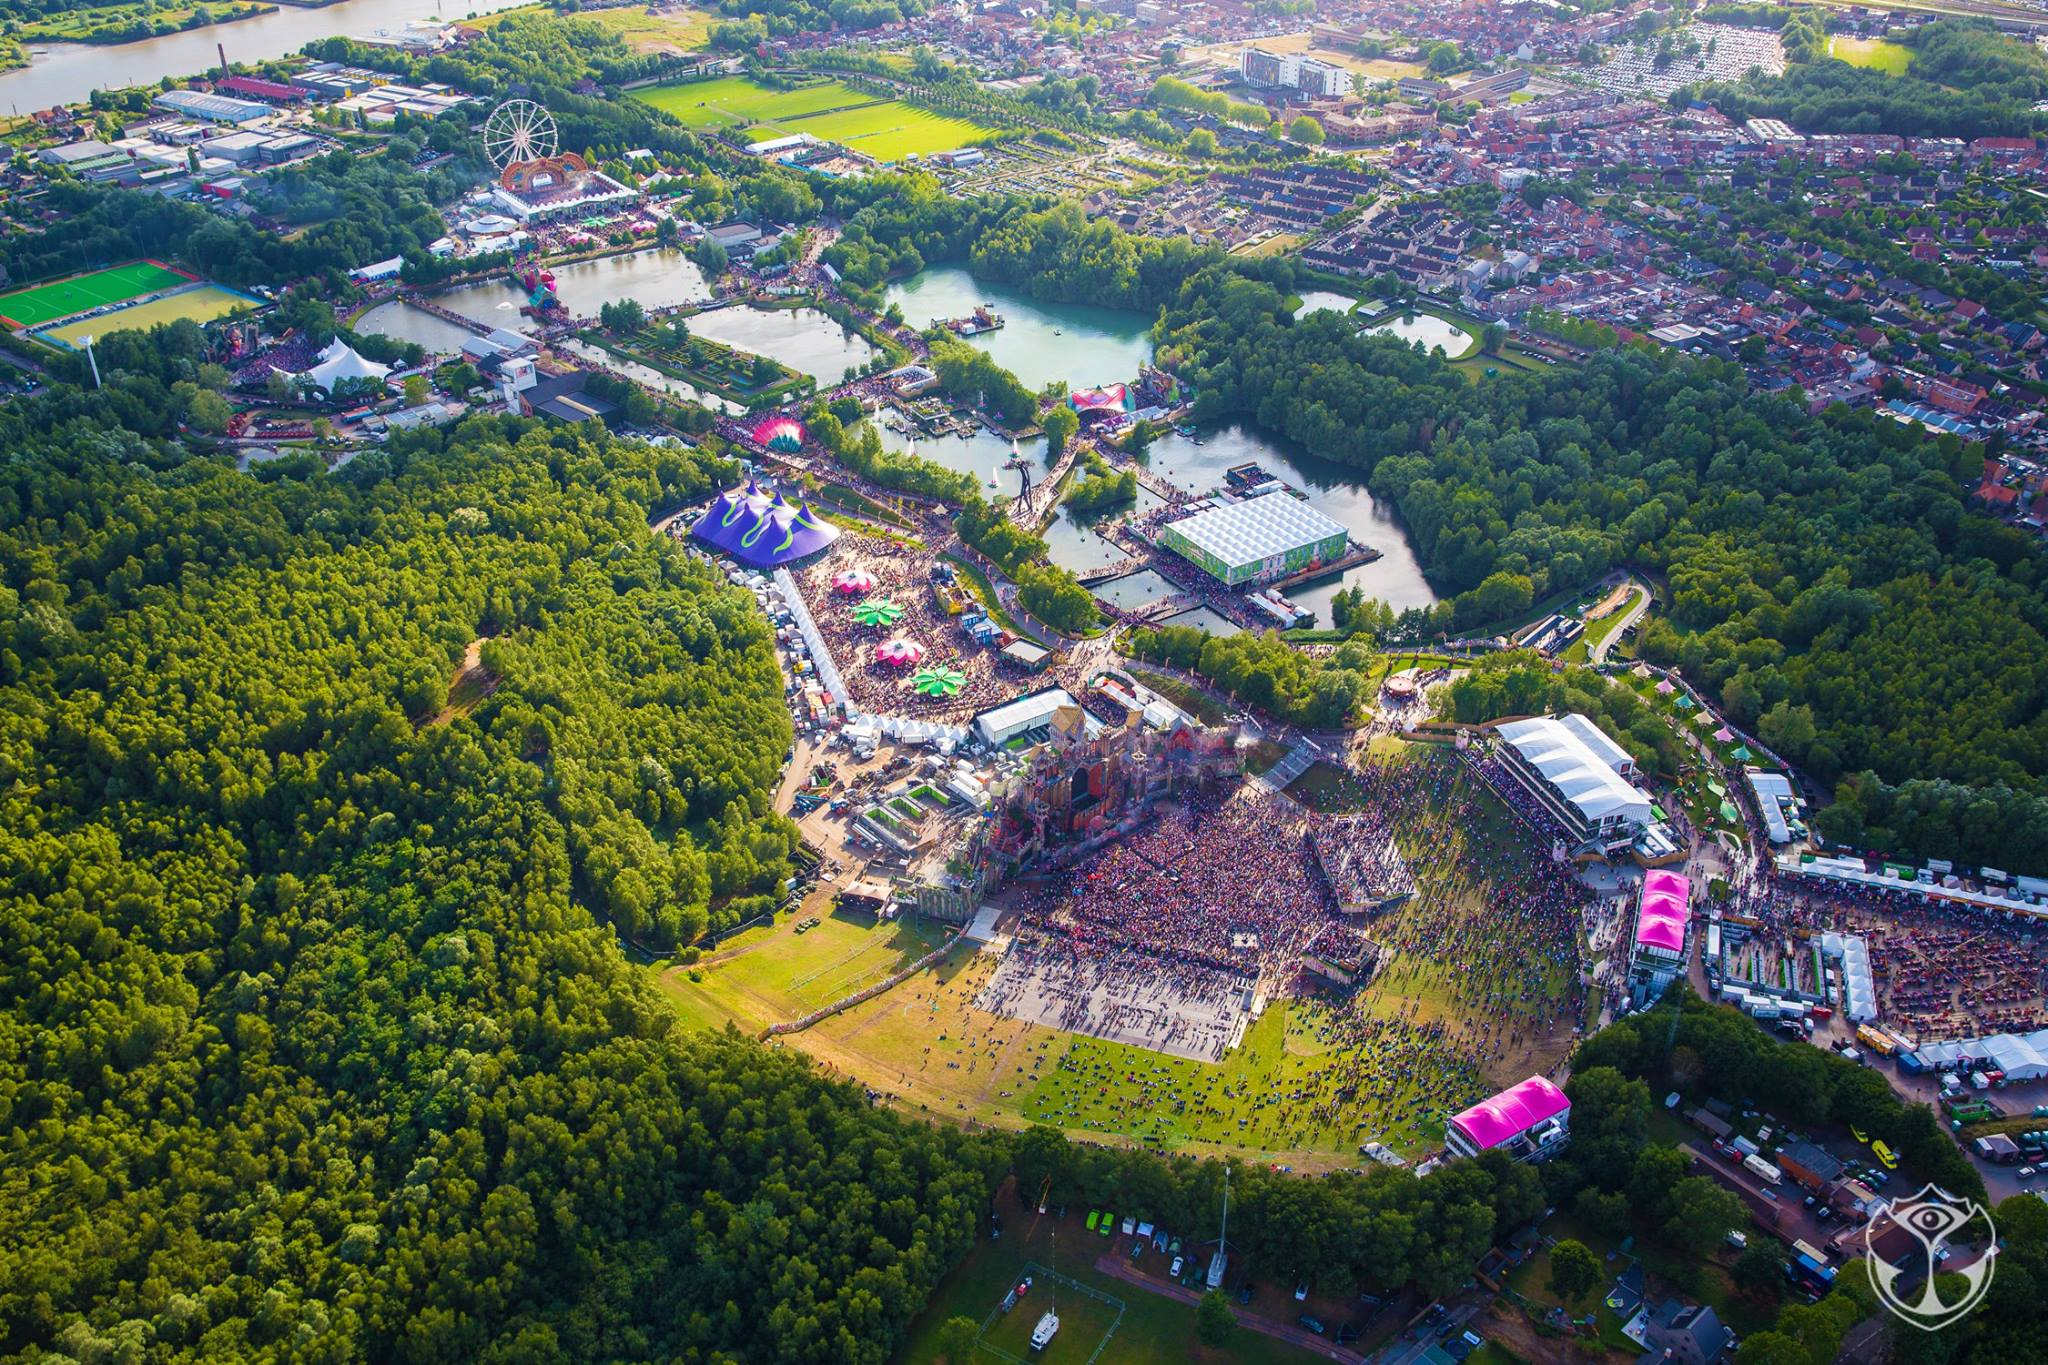 Tomorrowland 2015 picture 3